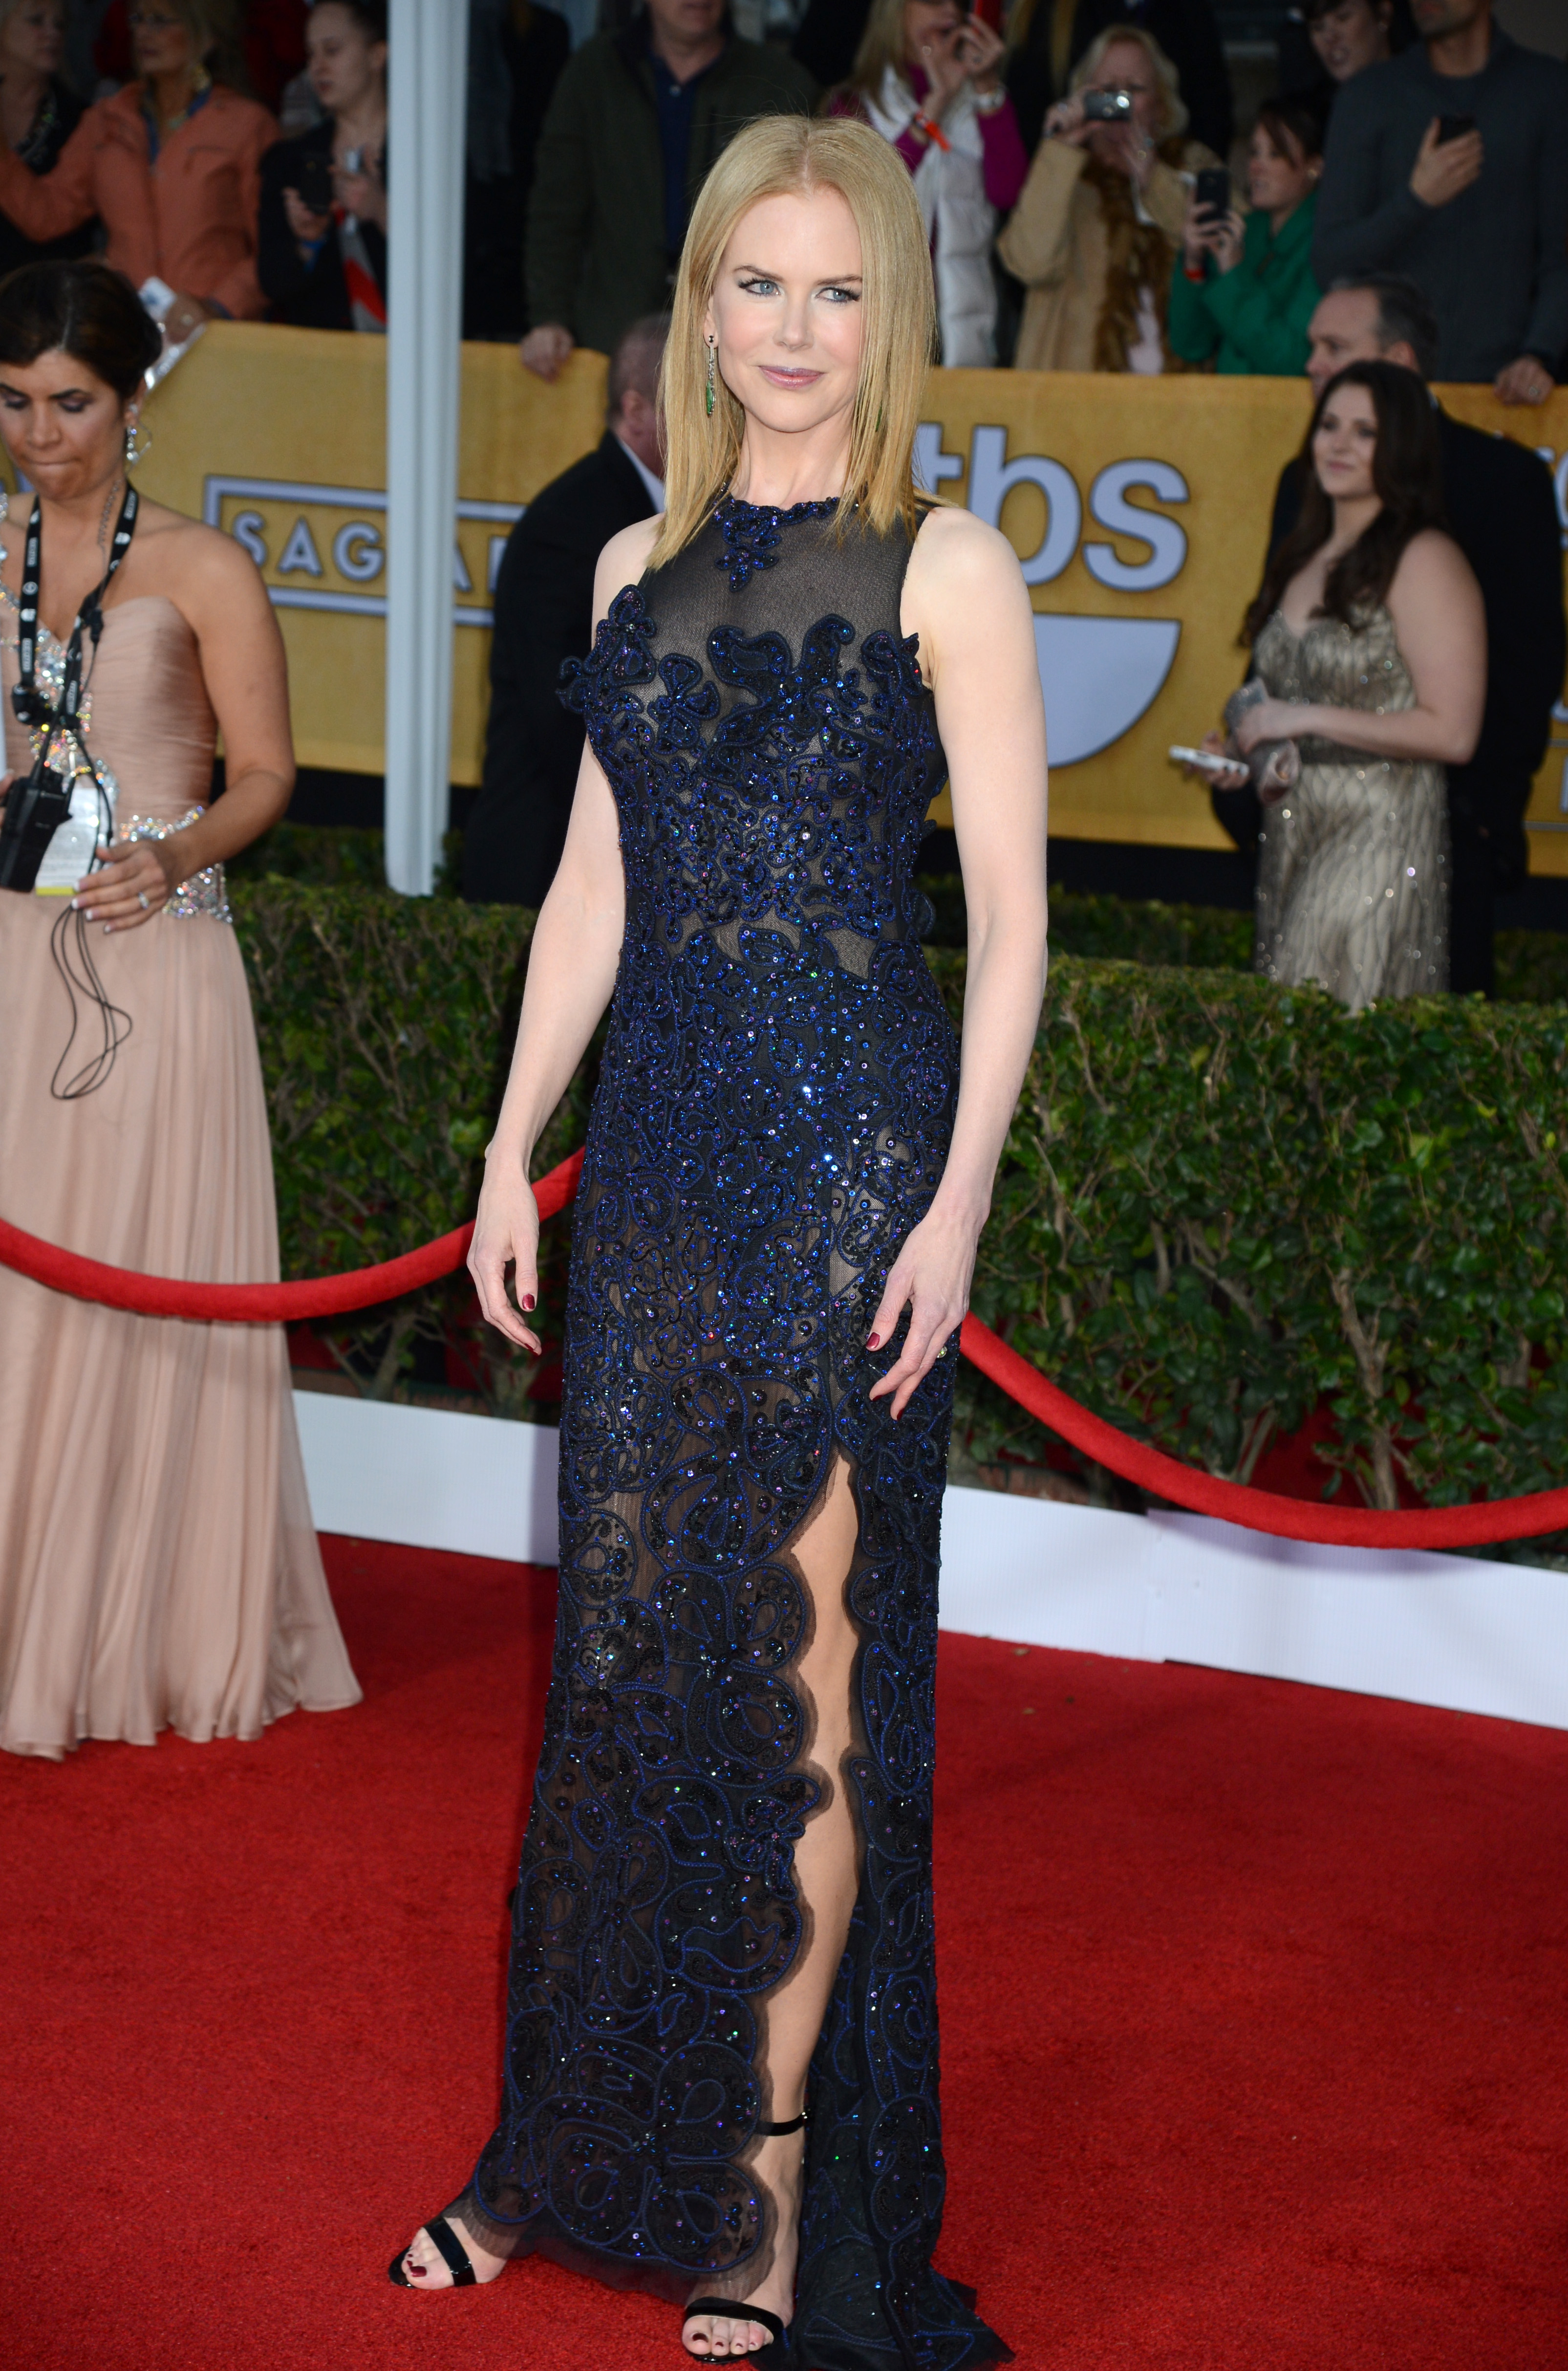 Nicole Kidman posed on the red carpet at the SAG Awards.